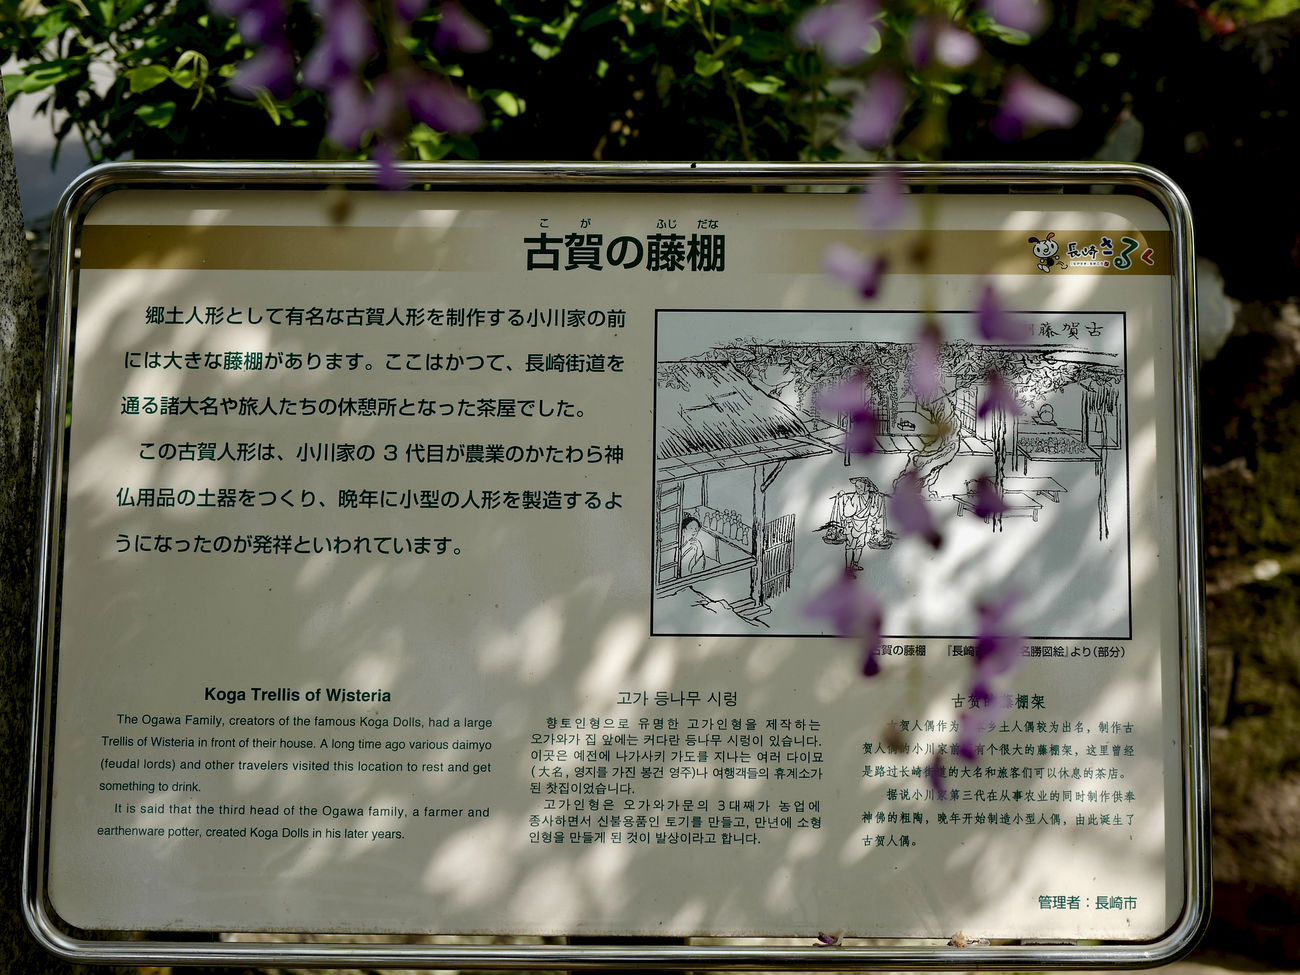 Koga, Fujitana ( Japanese Wisteria trellis ) : sunlight filters through the trees - the interplay between the light and the leaves. (木漏れ日)長崎市 古賀の藤棚 de Good Monday Close-up Information Board Nagasaki Historic Highway Nagasaki Today Outdoors Softness Sunlight Filters Through The Trees - The Interplay Between The Light And The Leaves. Text Trellis Wisteria 木漏れ日 藤棚 長崎市 長崎街道(Nagasaki Kaidō)